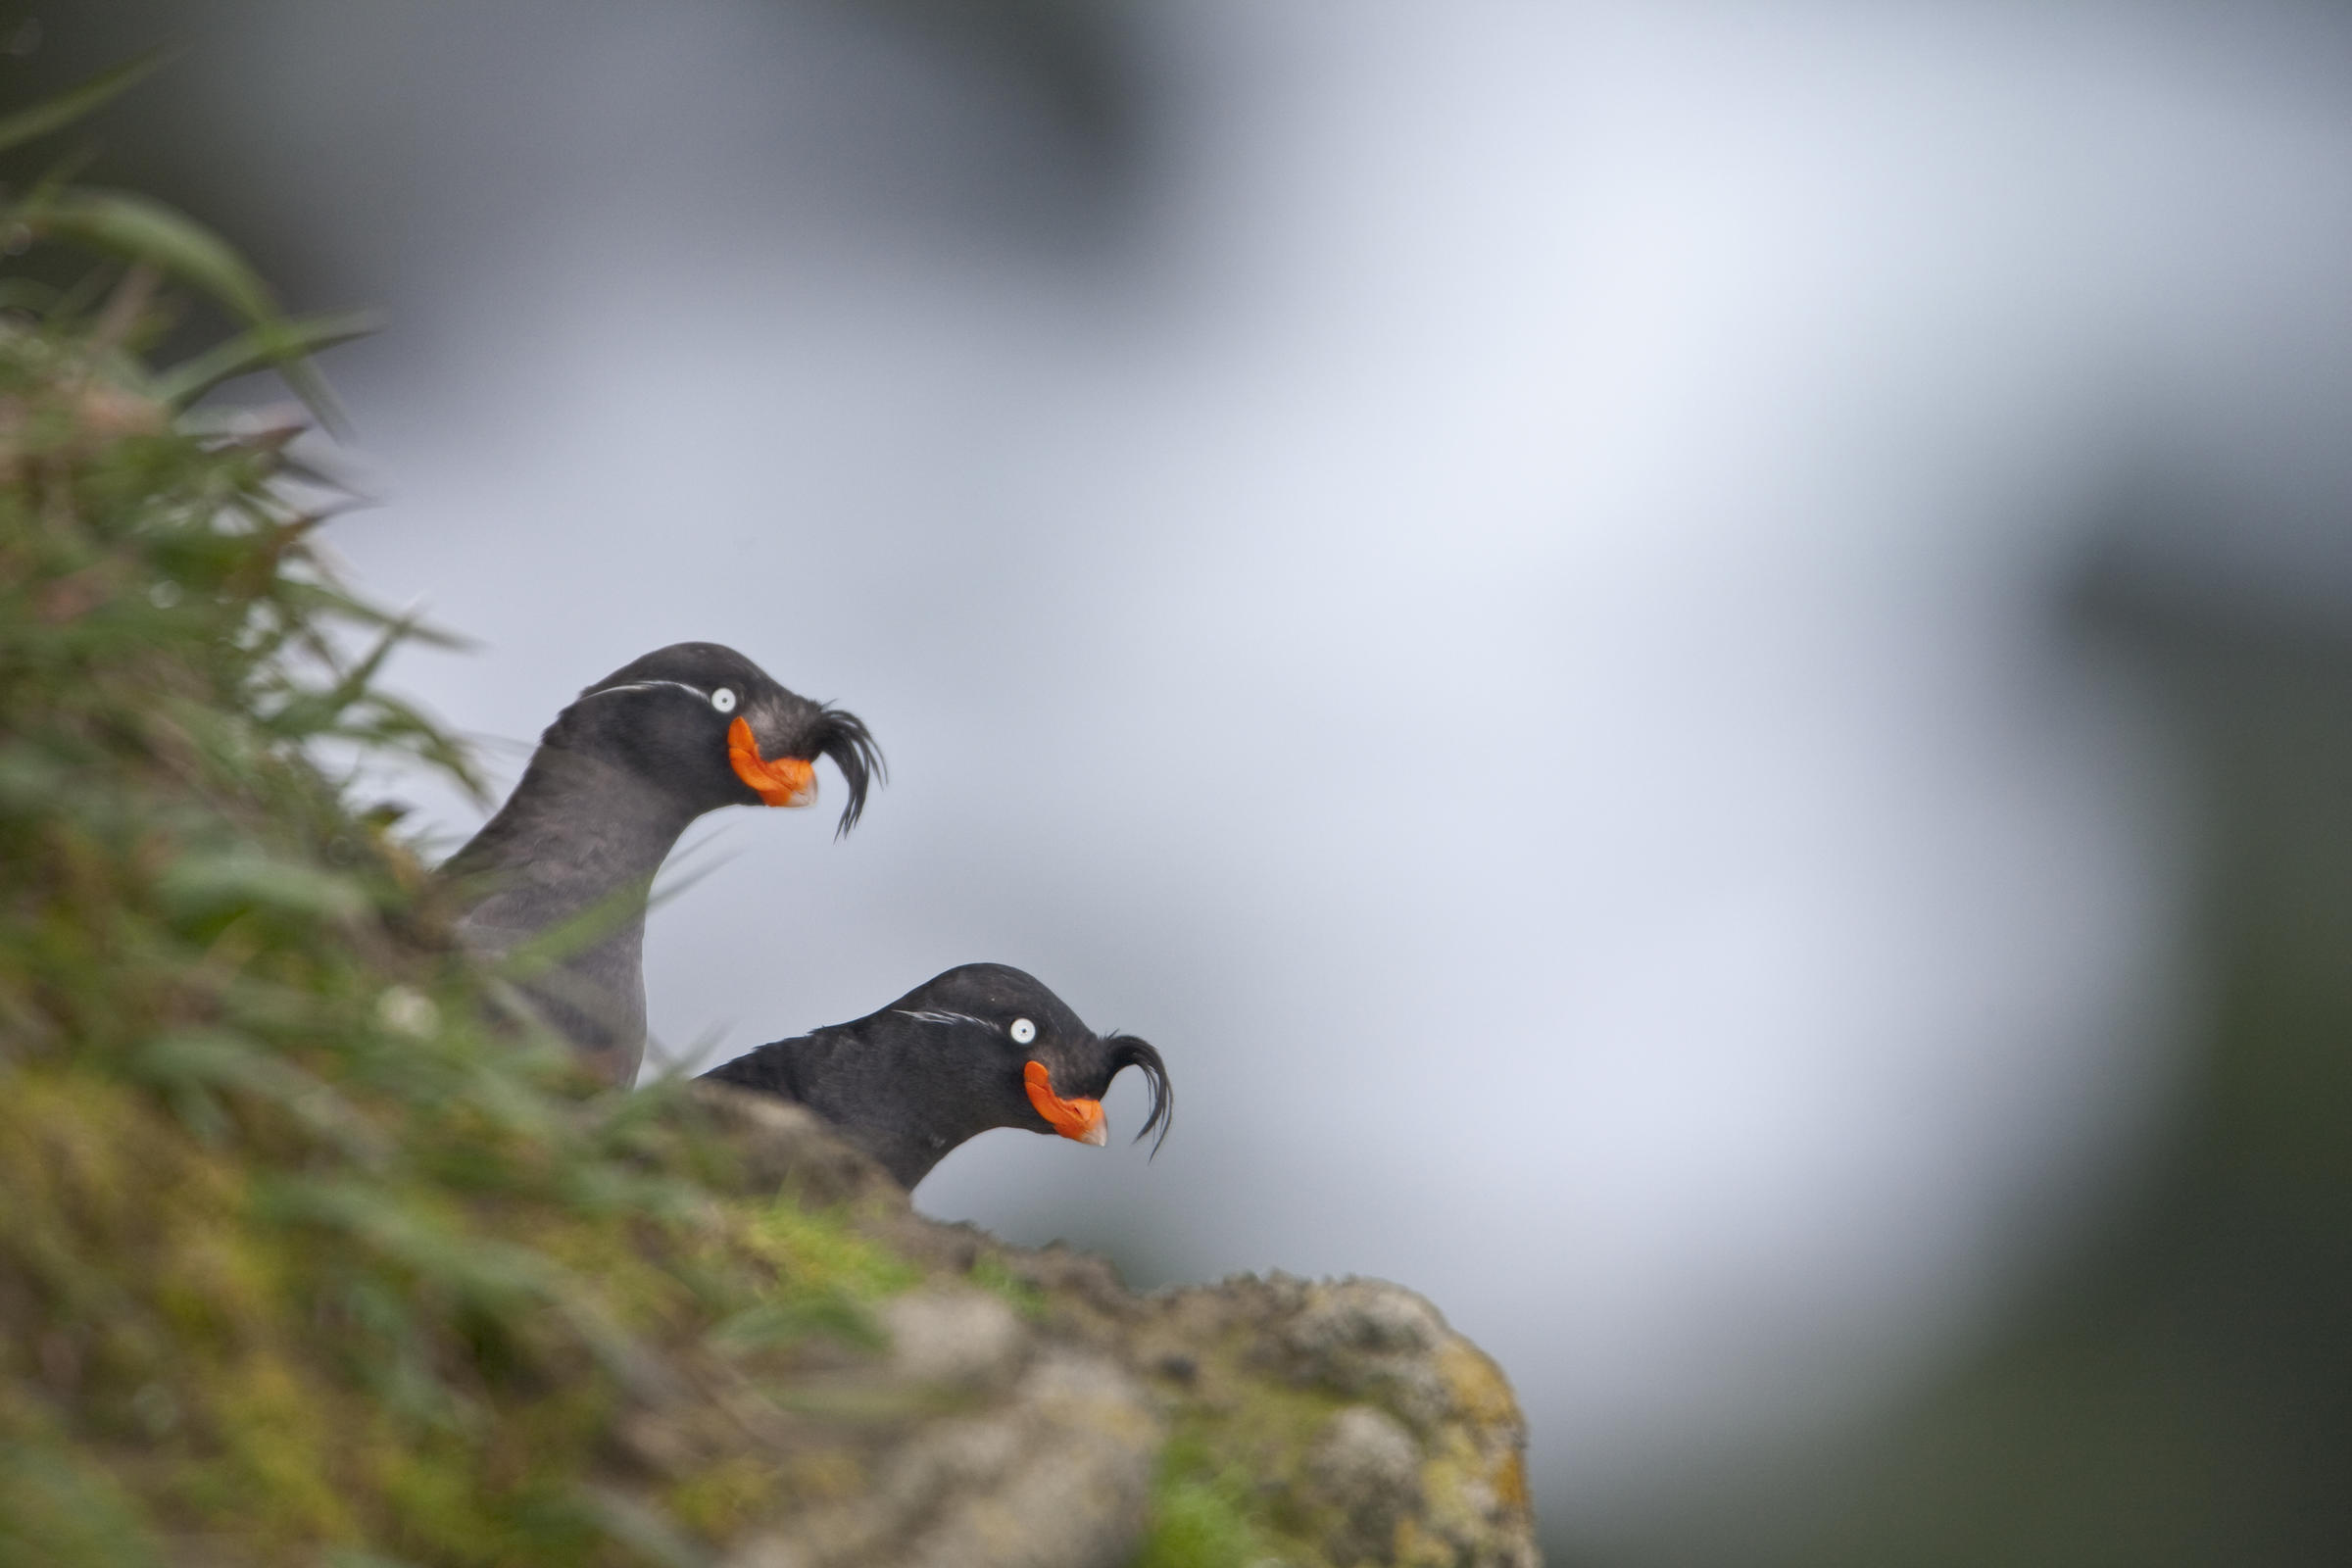 Crested Auklets